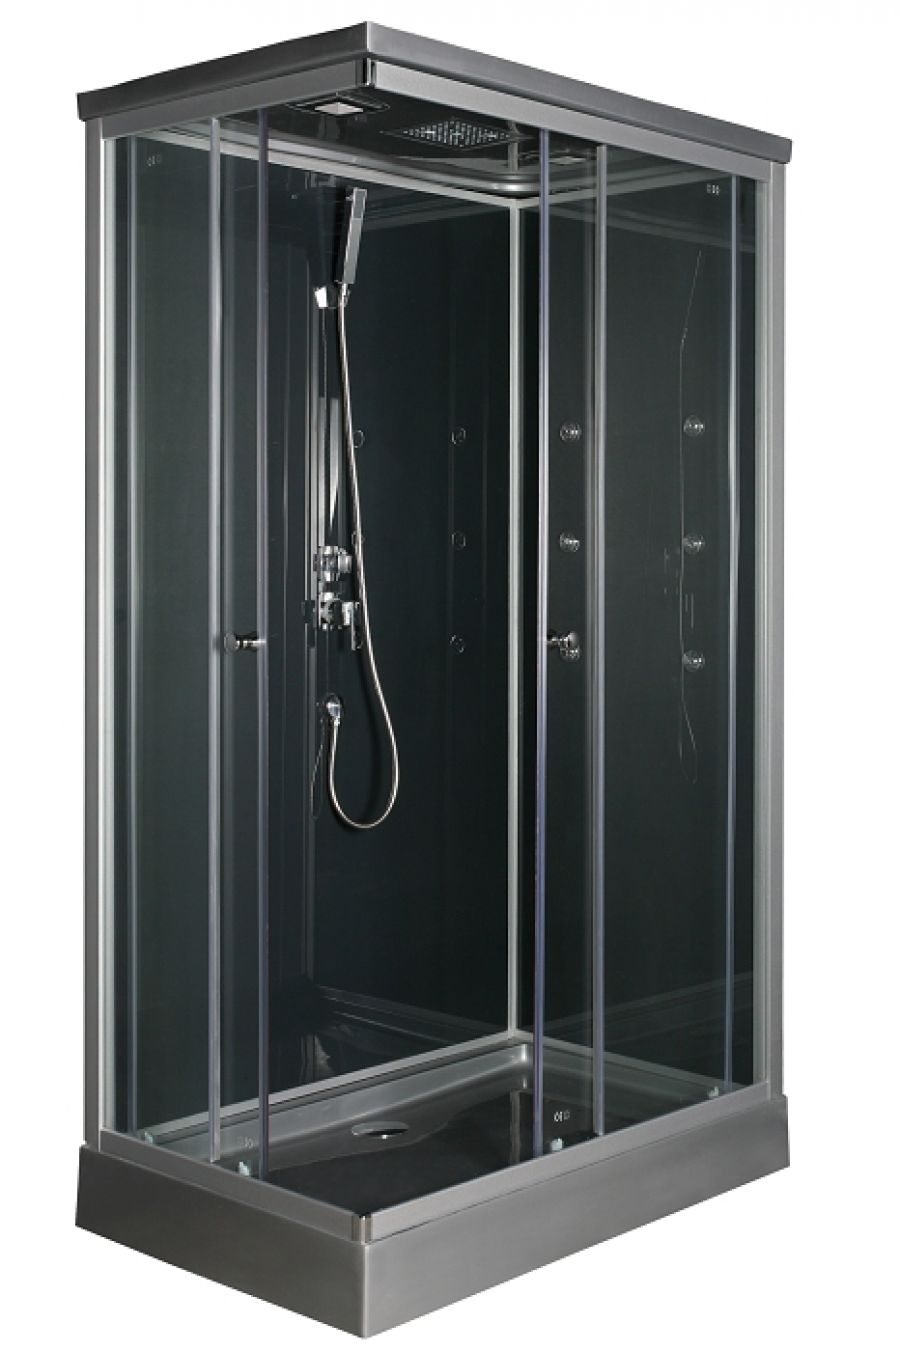 cabine de douche rectangulaire 120x80cm meuble de salle de bain douche. Black Bedroom Furniture Sets. Home Design Ideas